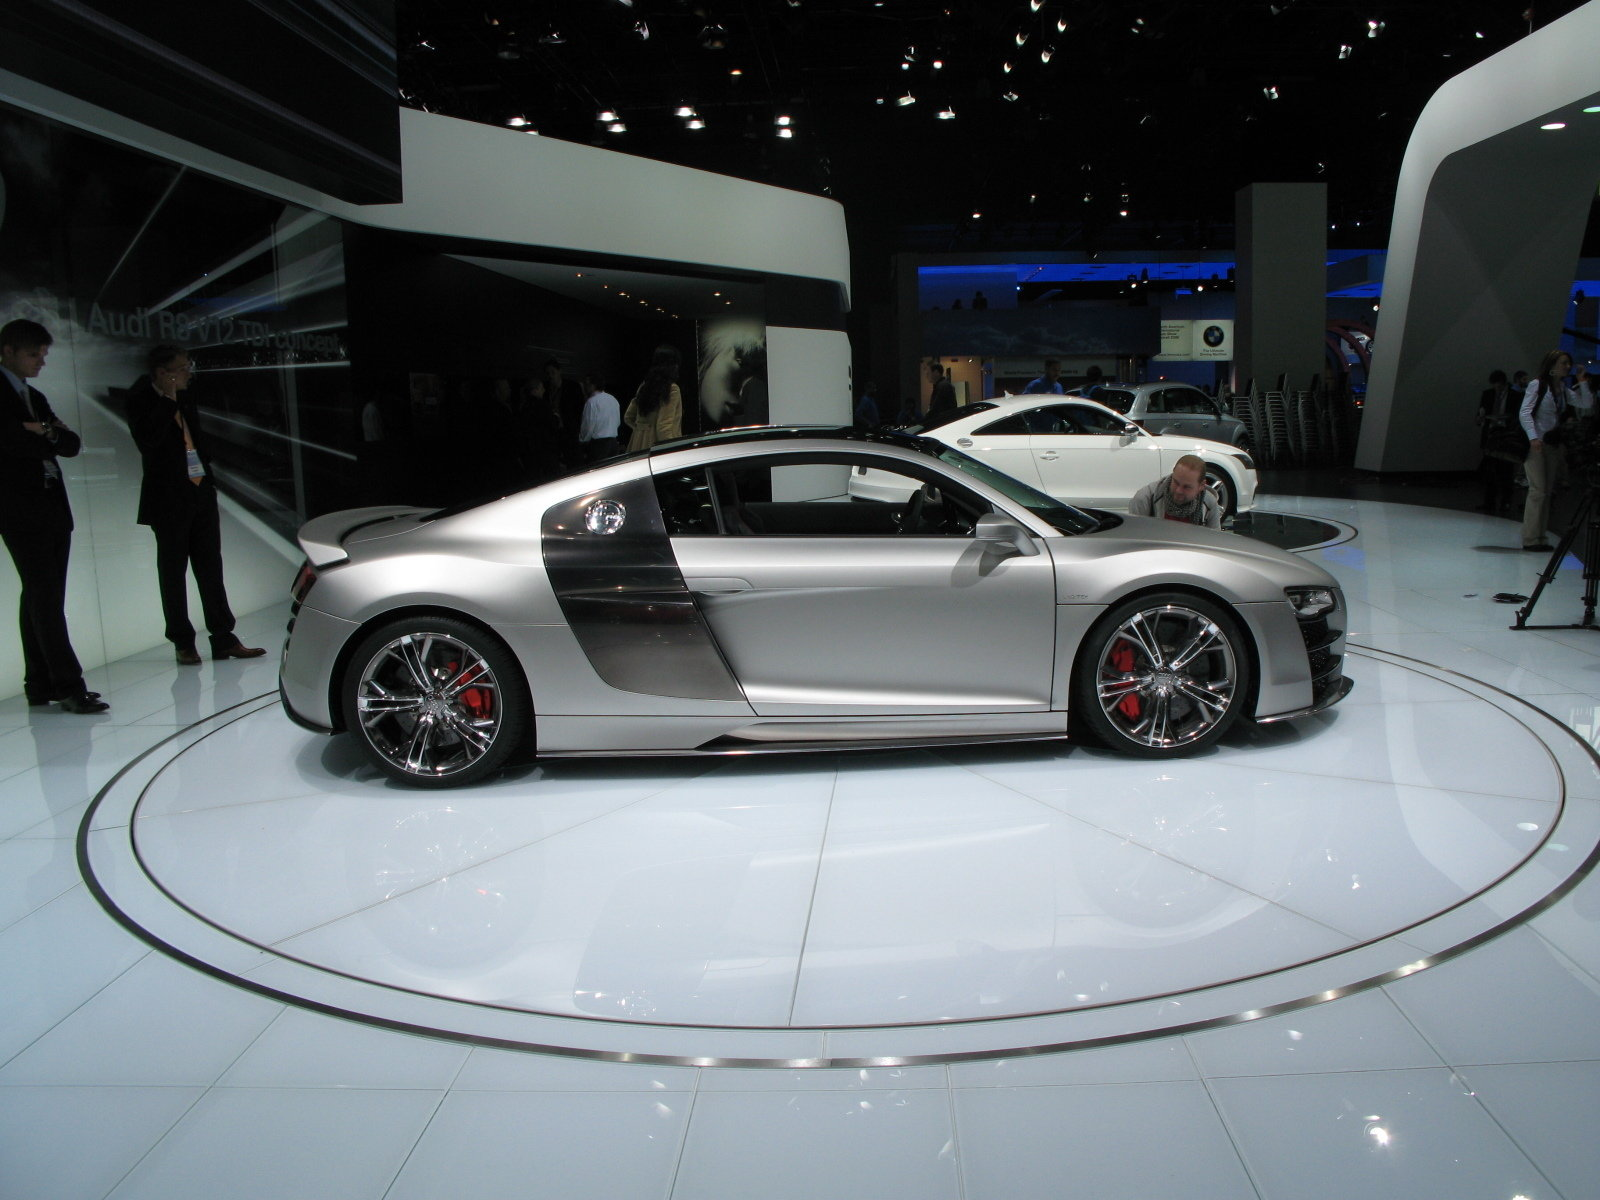 2008 audi r8 v12 tdi picture 225419 car review top speed. Black Bedroom Furniture Sets. Home Design Ideas